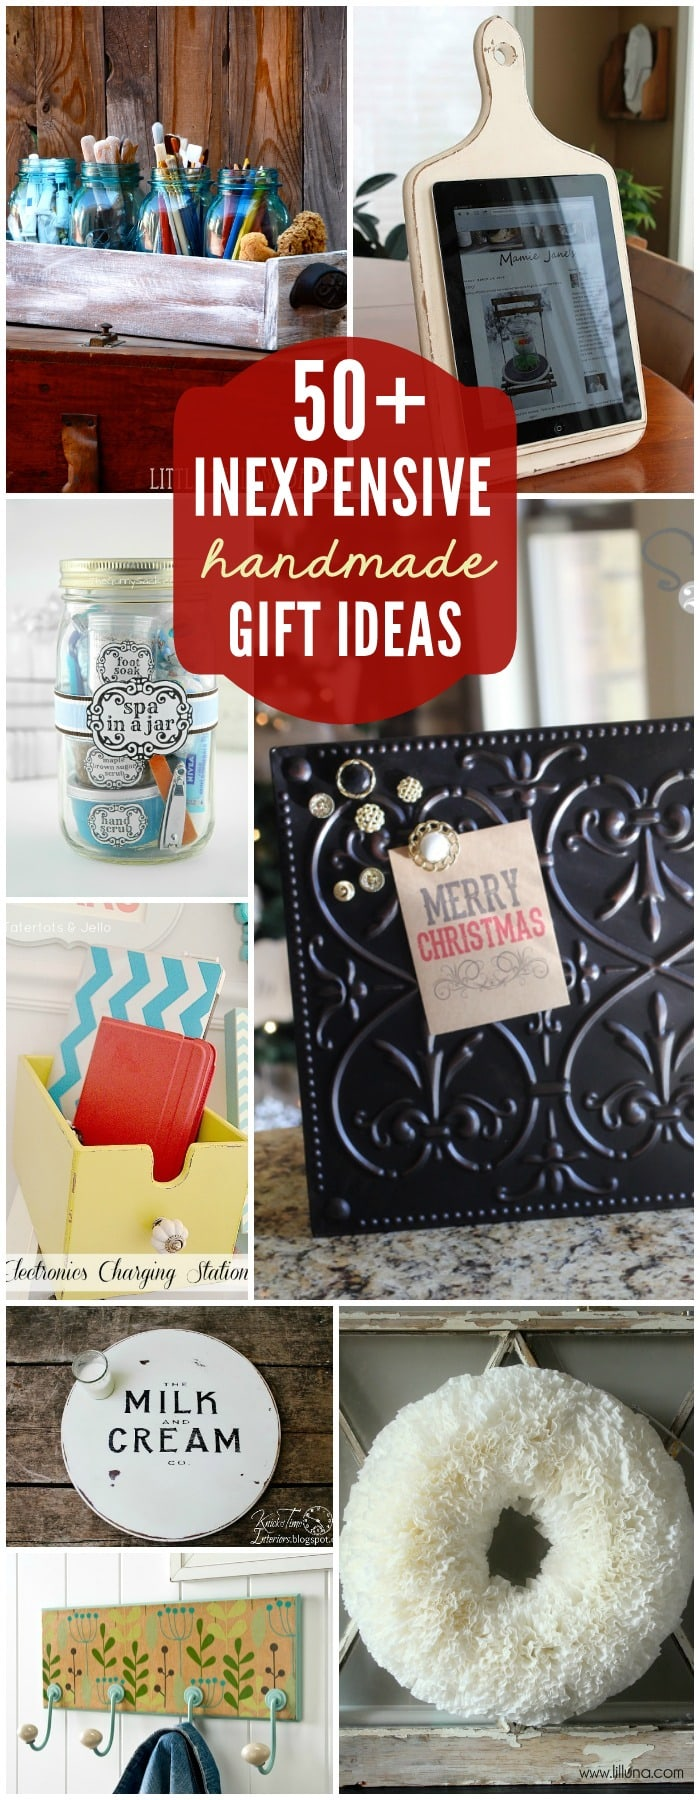 50+ Inexpensive DIY Gift Ideas - perfect for Christmas! { lilluna.com } Lots of great ideas for everyone!